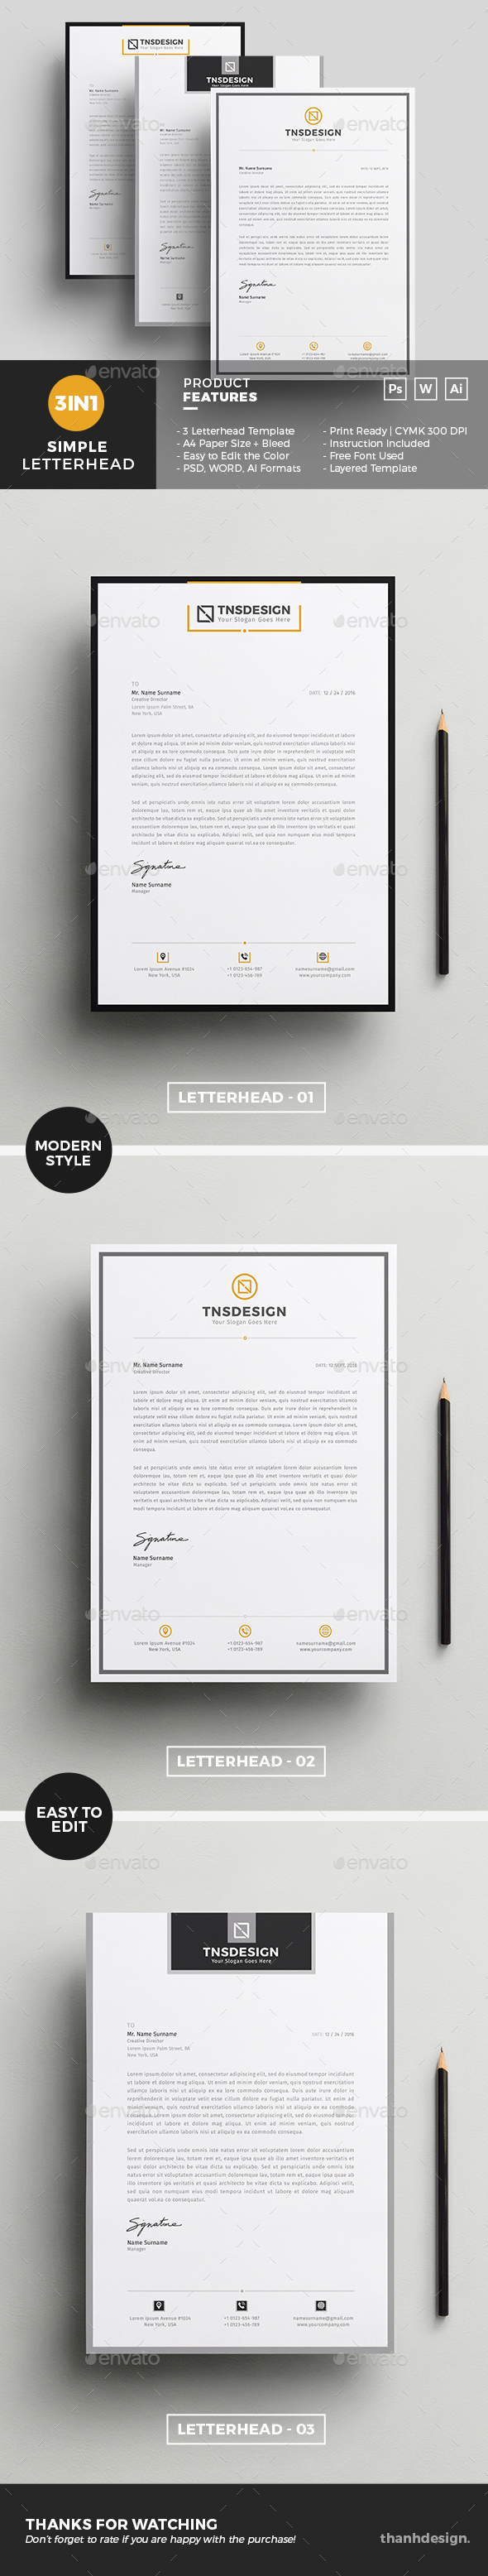 Letterhead template graphics designs templates spiritdancerdesigns Image collections